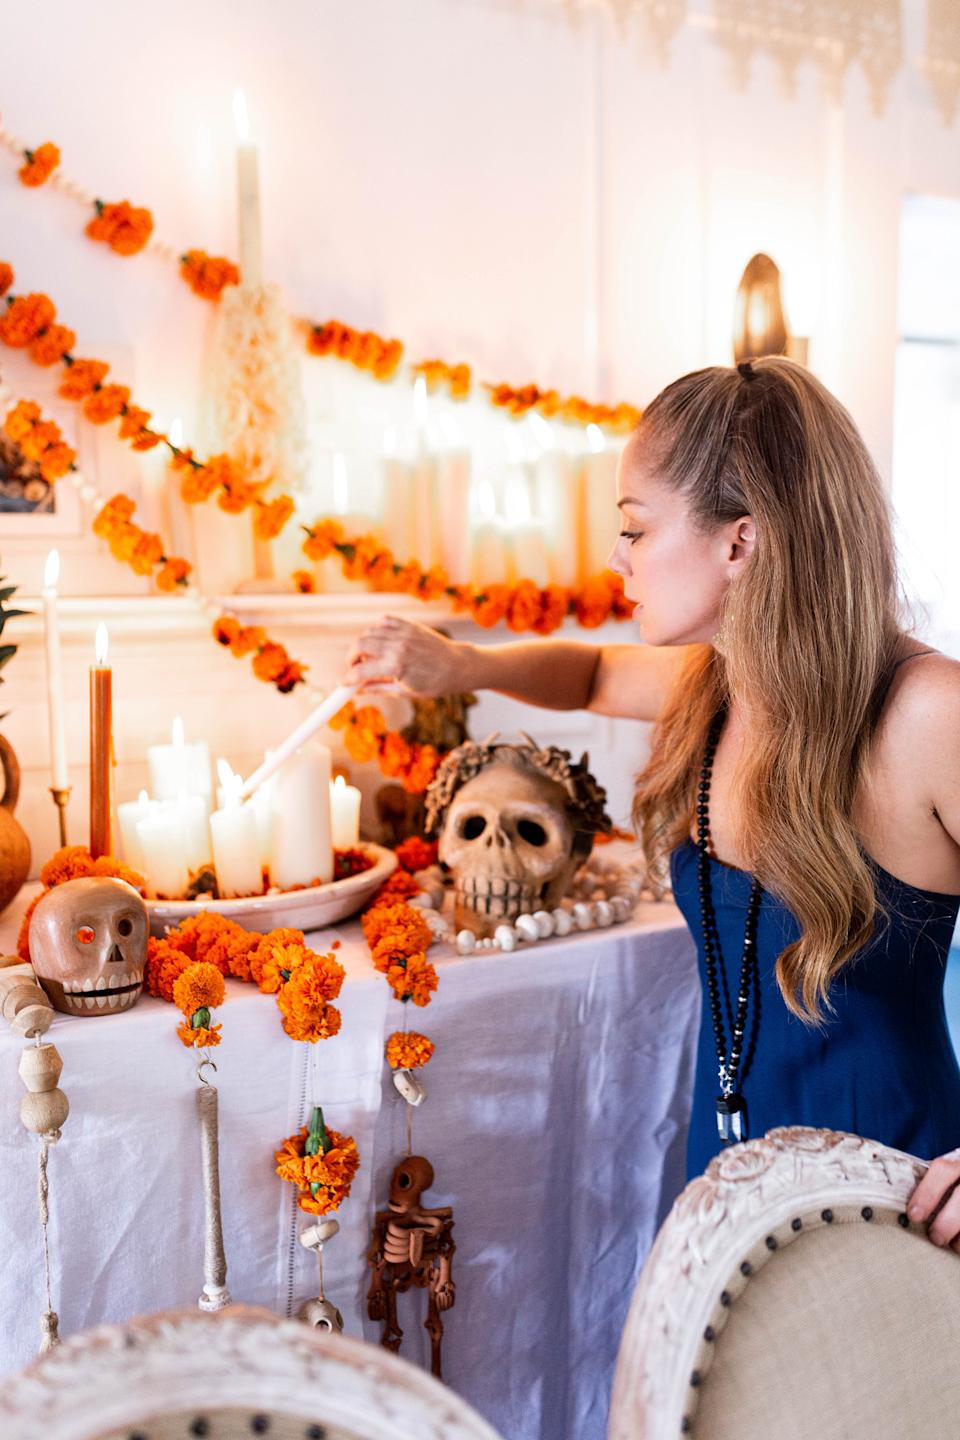 Marcela Valladolid lights a candle on her ofrenda, or altar. (Photo: Cecilia Martin Del Campo)